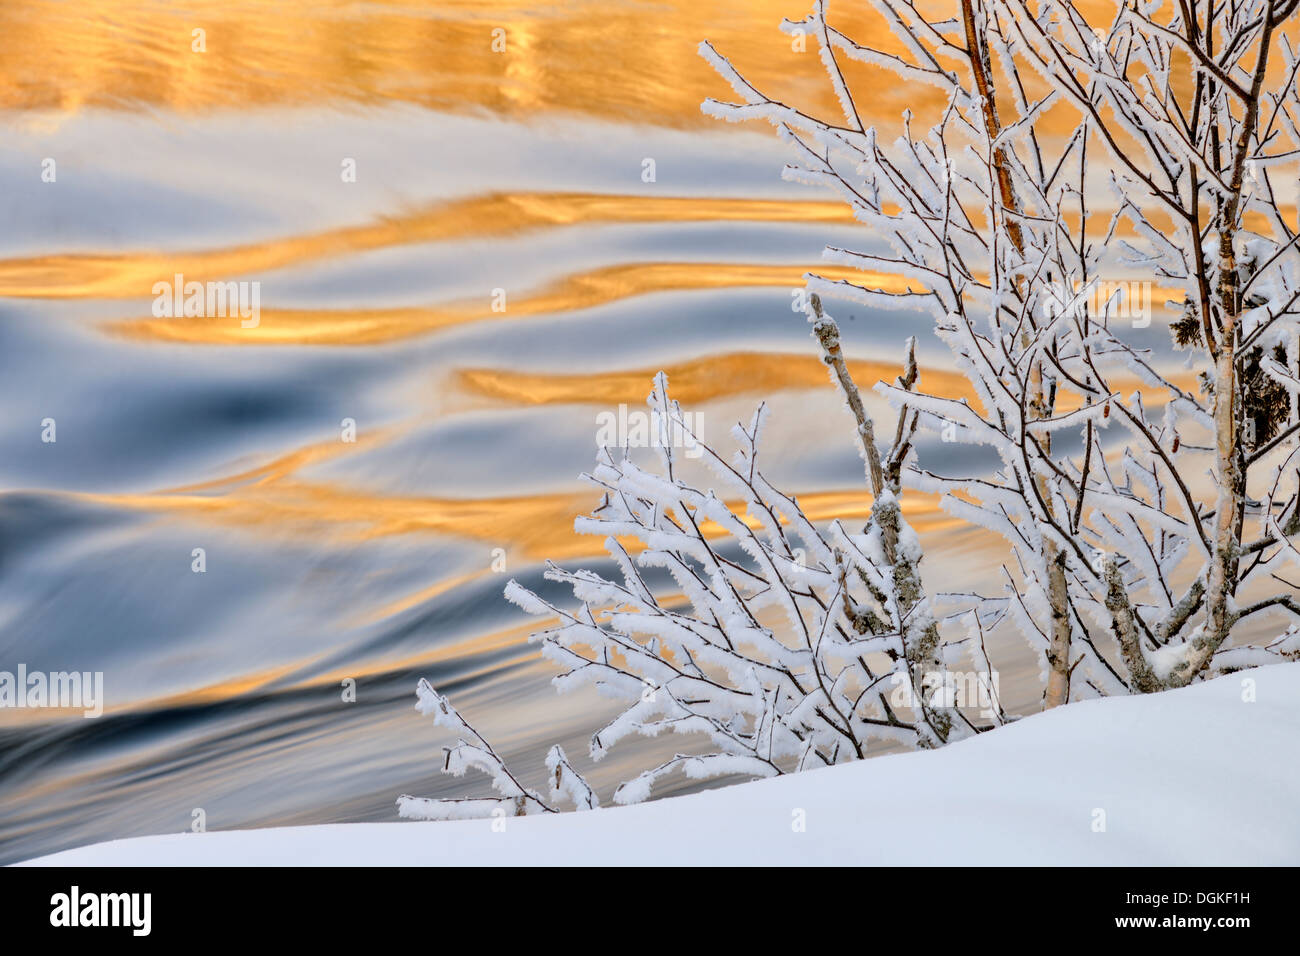 Open water of Wanapitei River with frosted trees in winter Wanup Ontario Canada - Stock Image